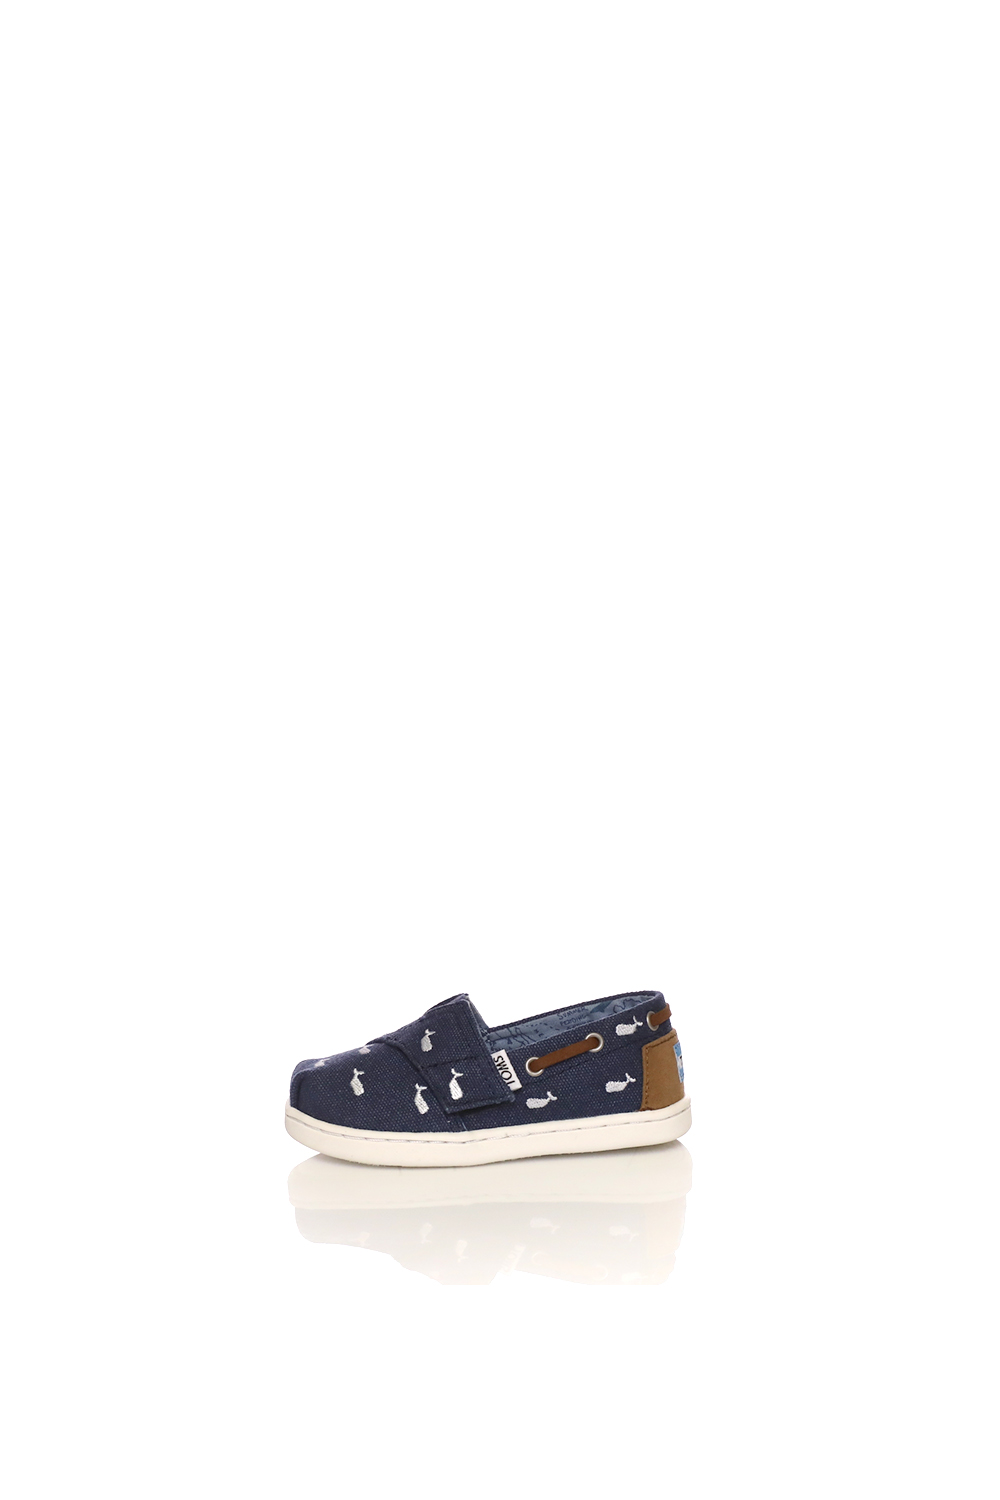 -50% Collective Online TOMS – Παιδικές εσπαντρίγιες TOMS NVY WHLE  EMBROIDERY TN BIMINI ντένιμ 87b0c501596